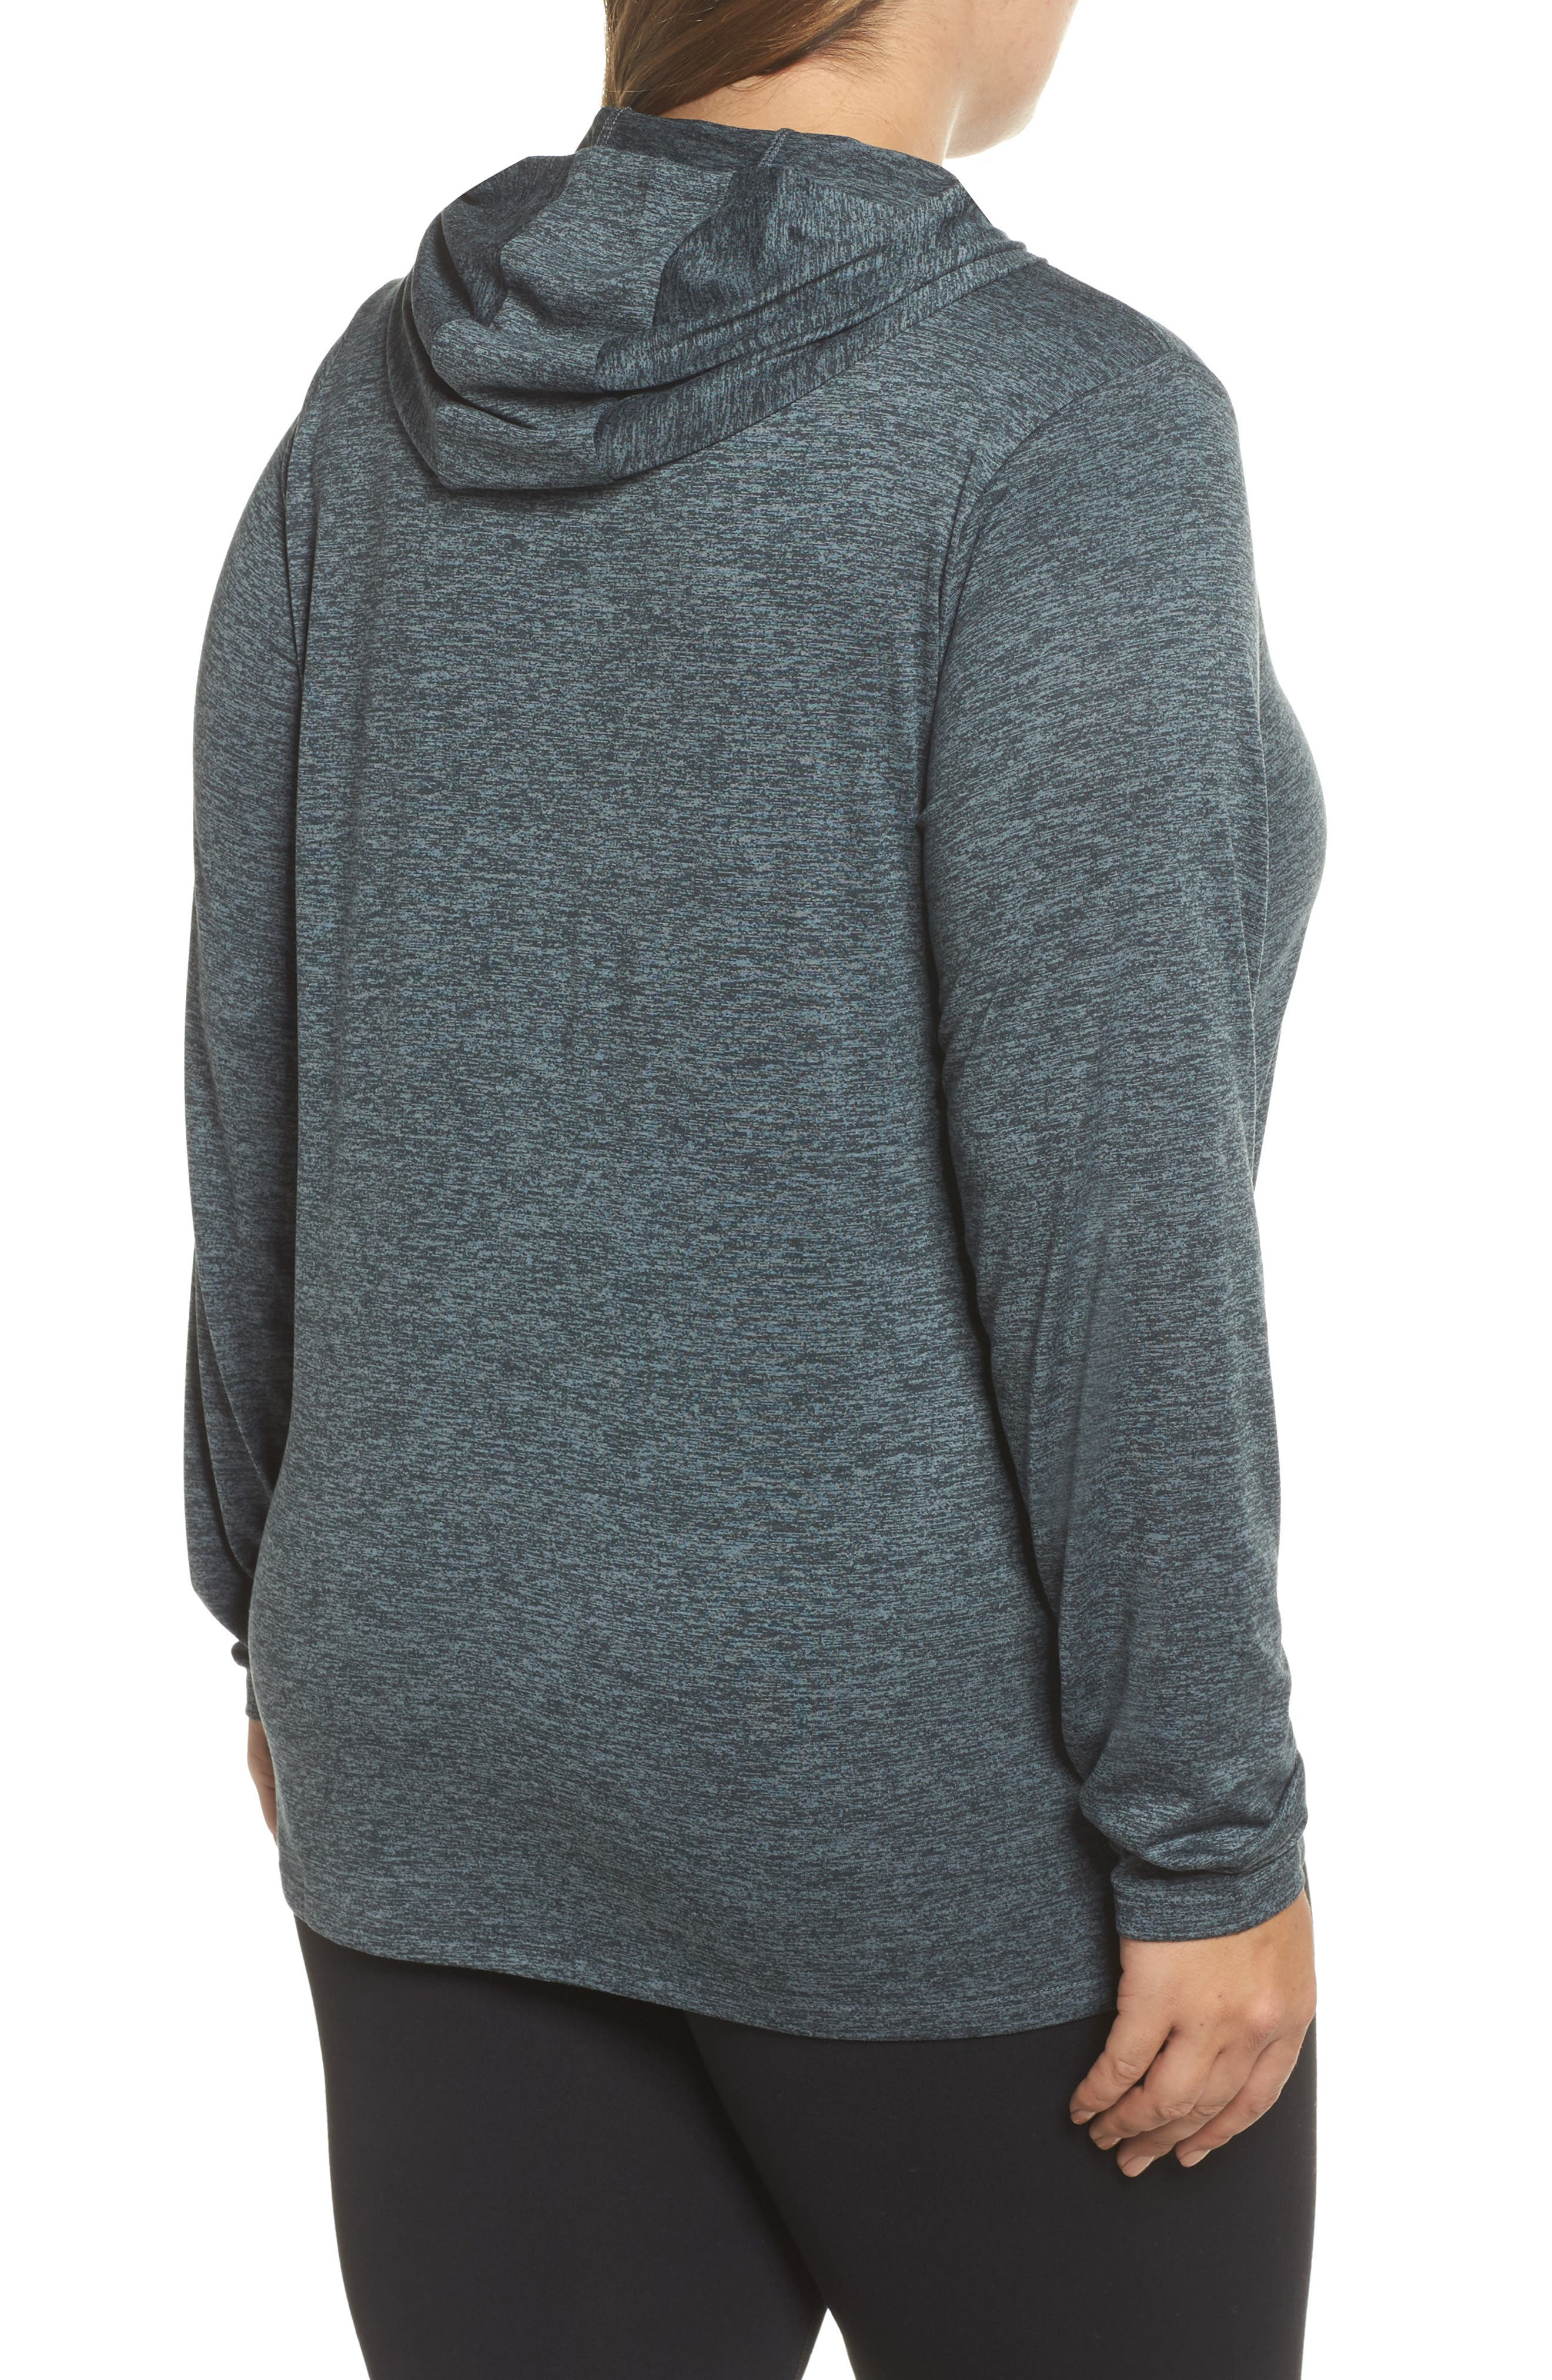 Dry Training Hoodie,                             Alternate thumbnail 2, color,                             Black/ Cool Grey/ White